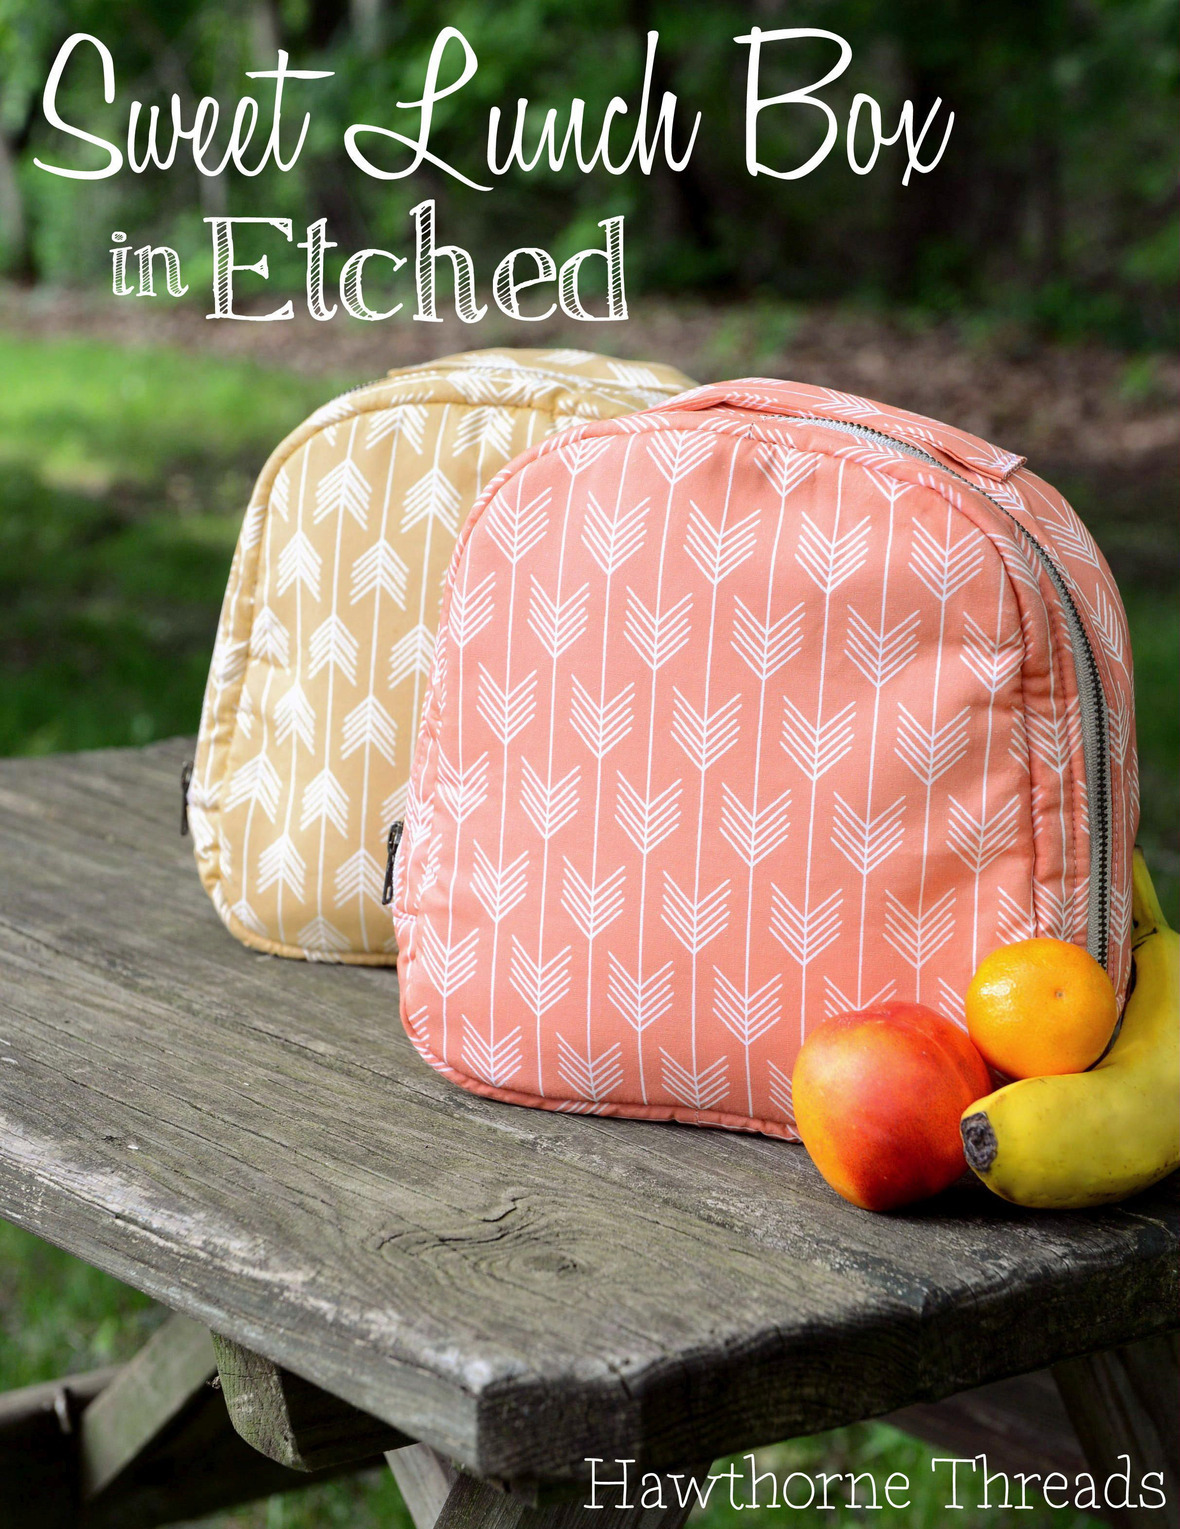 Hawthorne Threads Etched Lunch Box